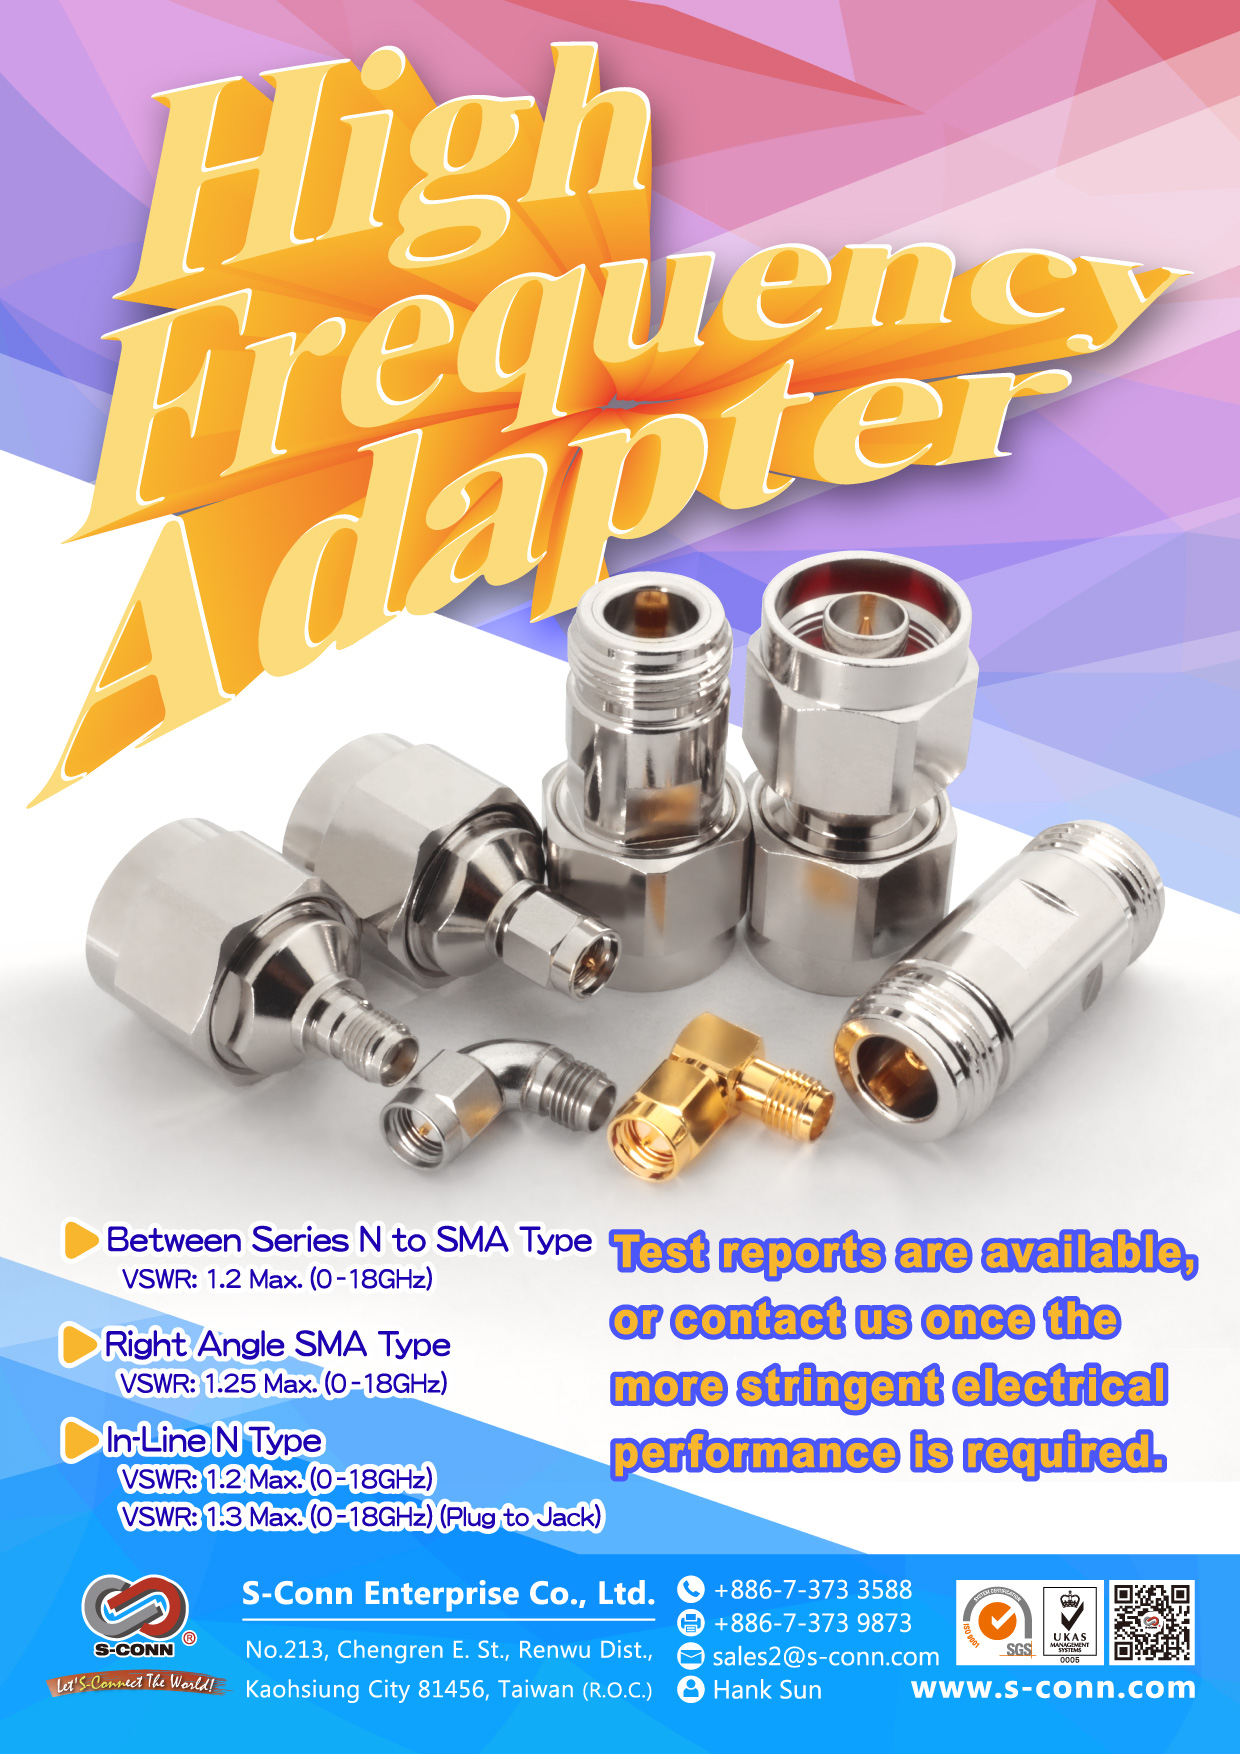 High Frequency Adapter